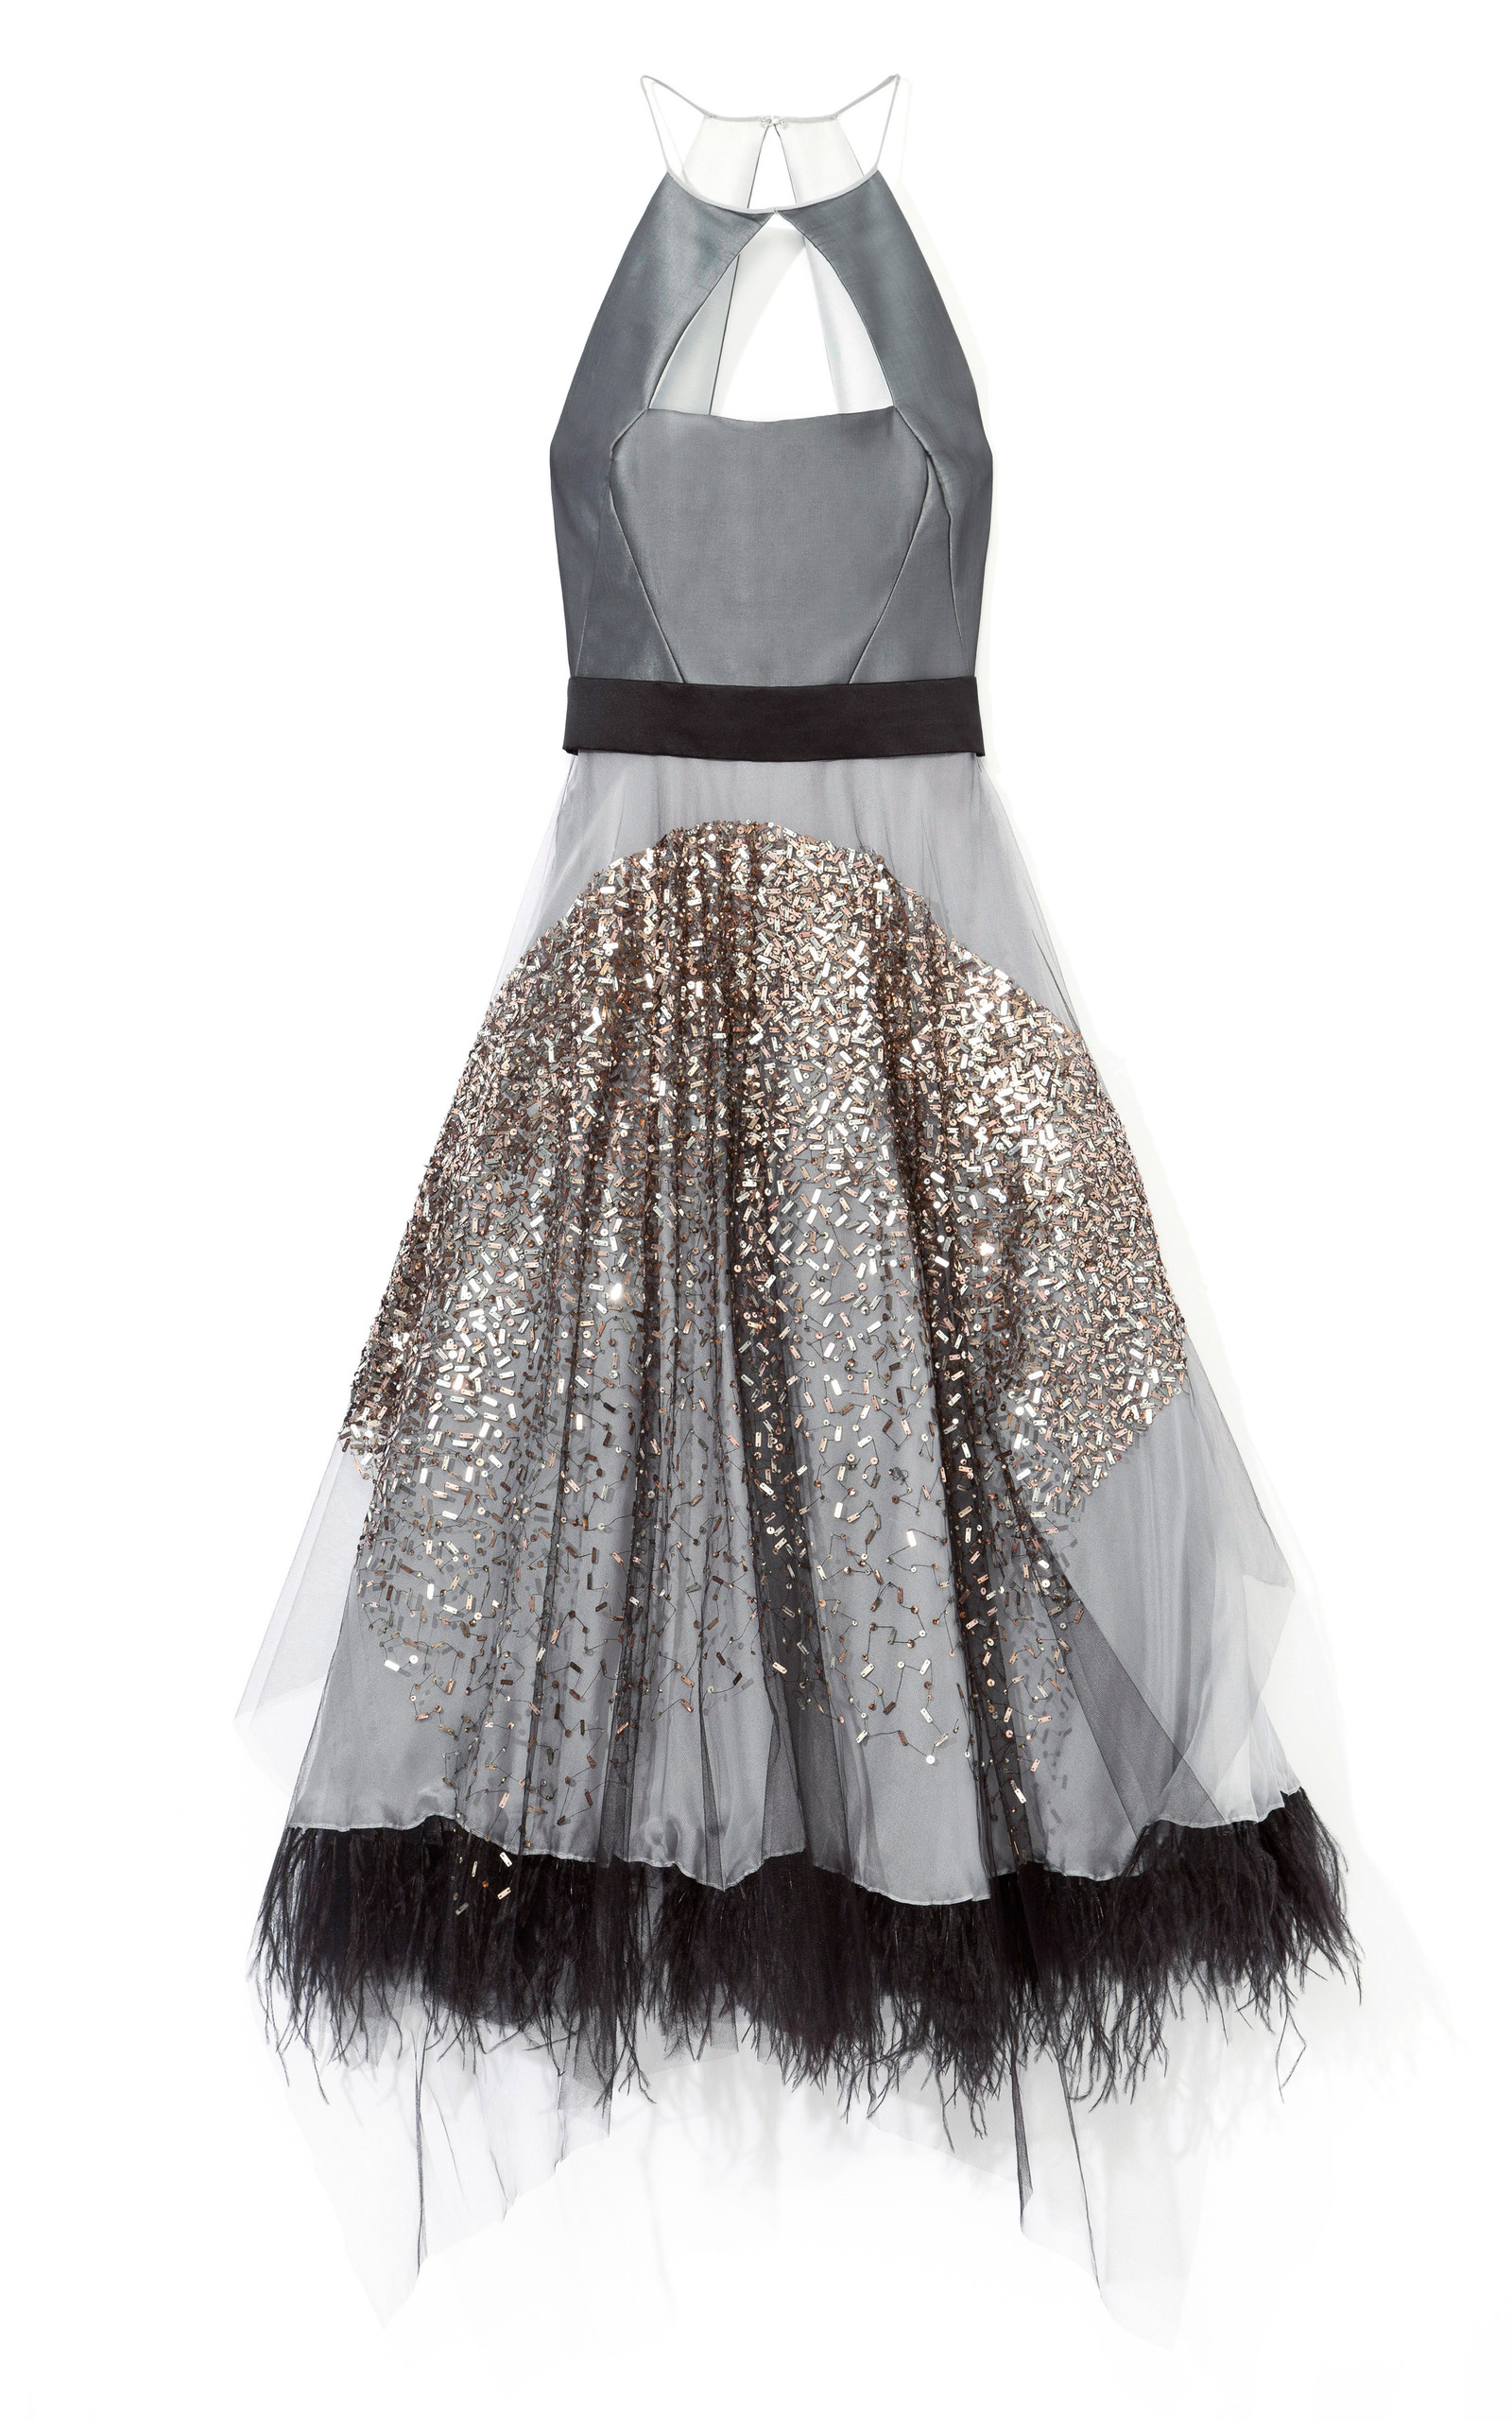 686ce0ee142 Gold Dust Embroidered Cocktail Dress by Bibhu Mohapatra